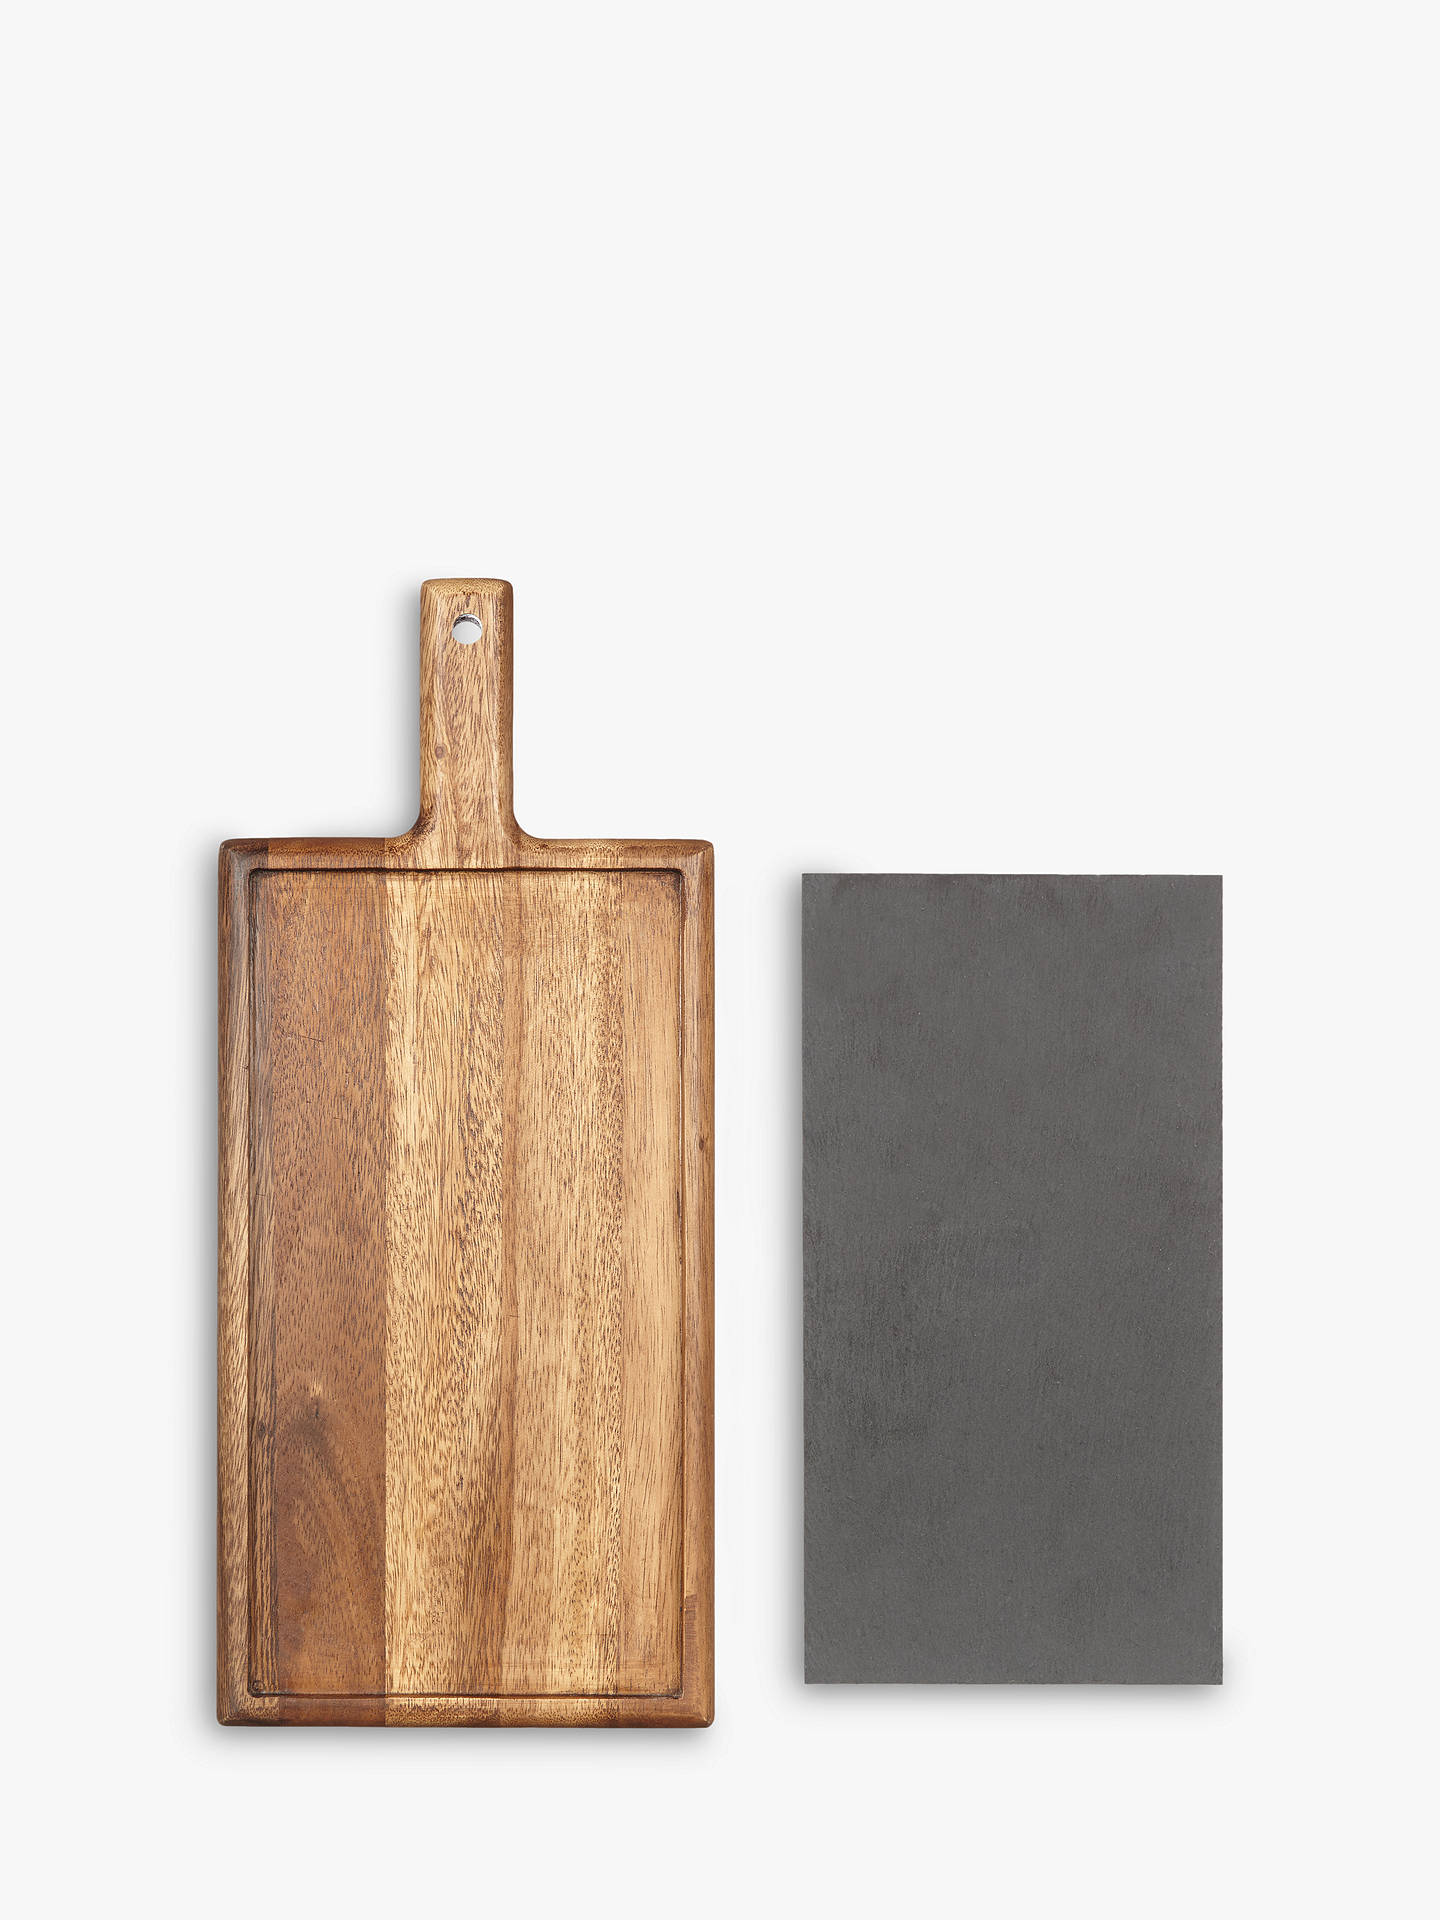 BuyJohn Lewis & Partners Serving Board, Acacia Wood & Slate Online at johnlewis.com